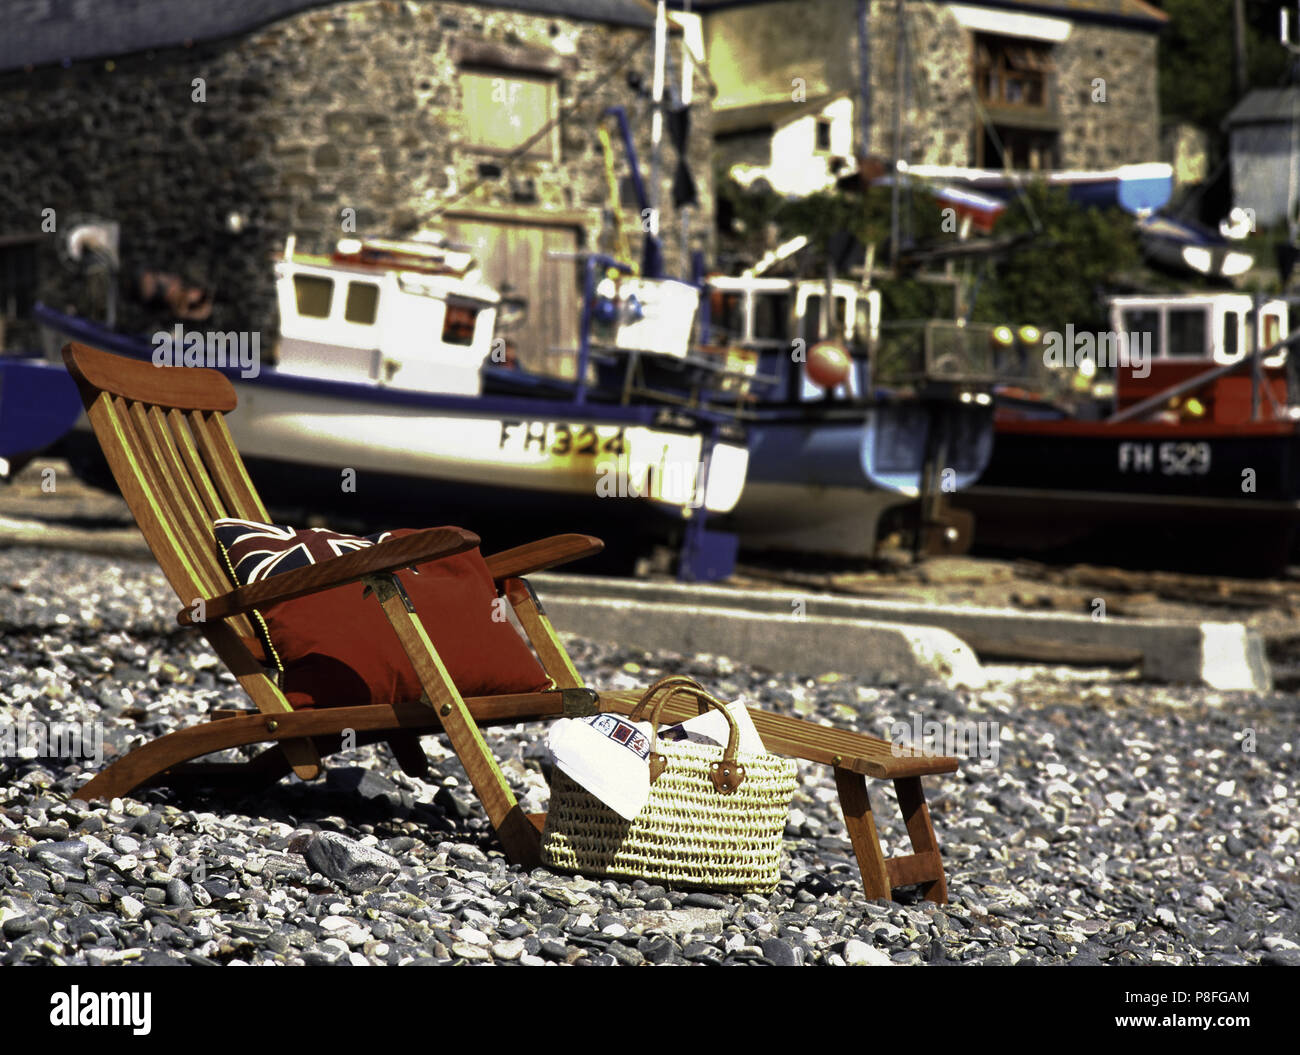 Restored Vintage Wooden Steamer Chair On A Pebble Beach With Boats In The Background Stock Photo Alamy